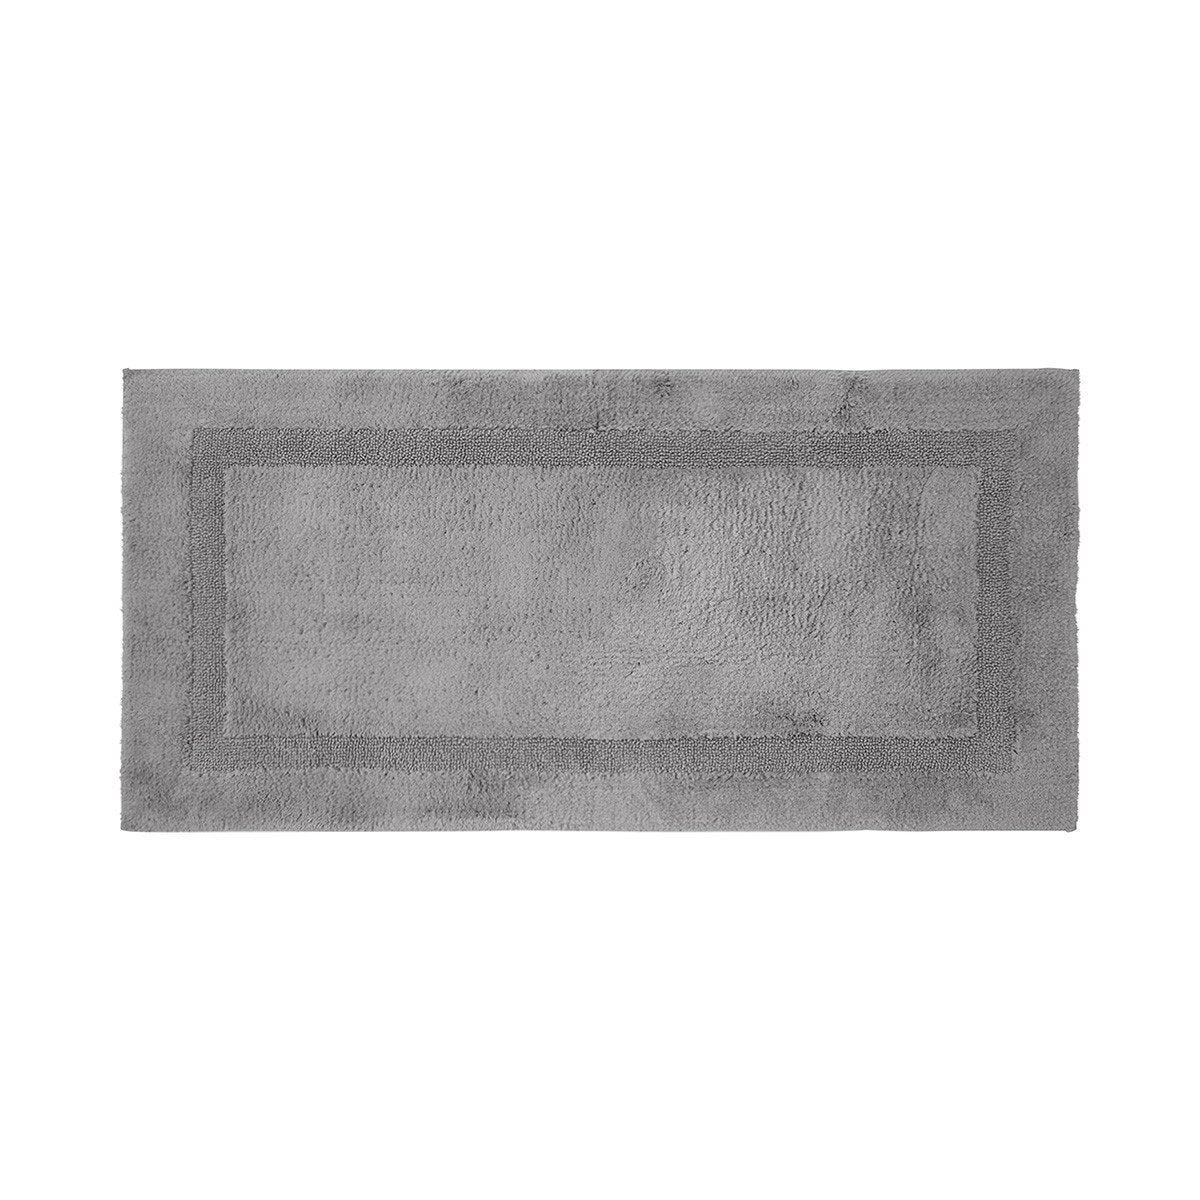 Aquilon Platine Reversible Bath Rug by Yves Delorme | Fig Linens - rectangle, gray bath mat, rug